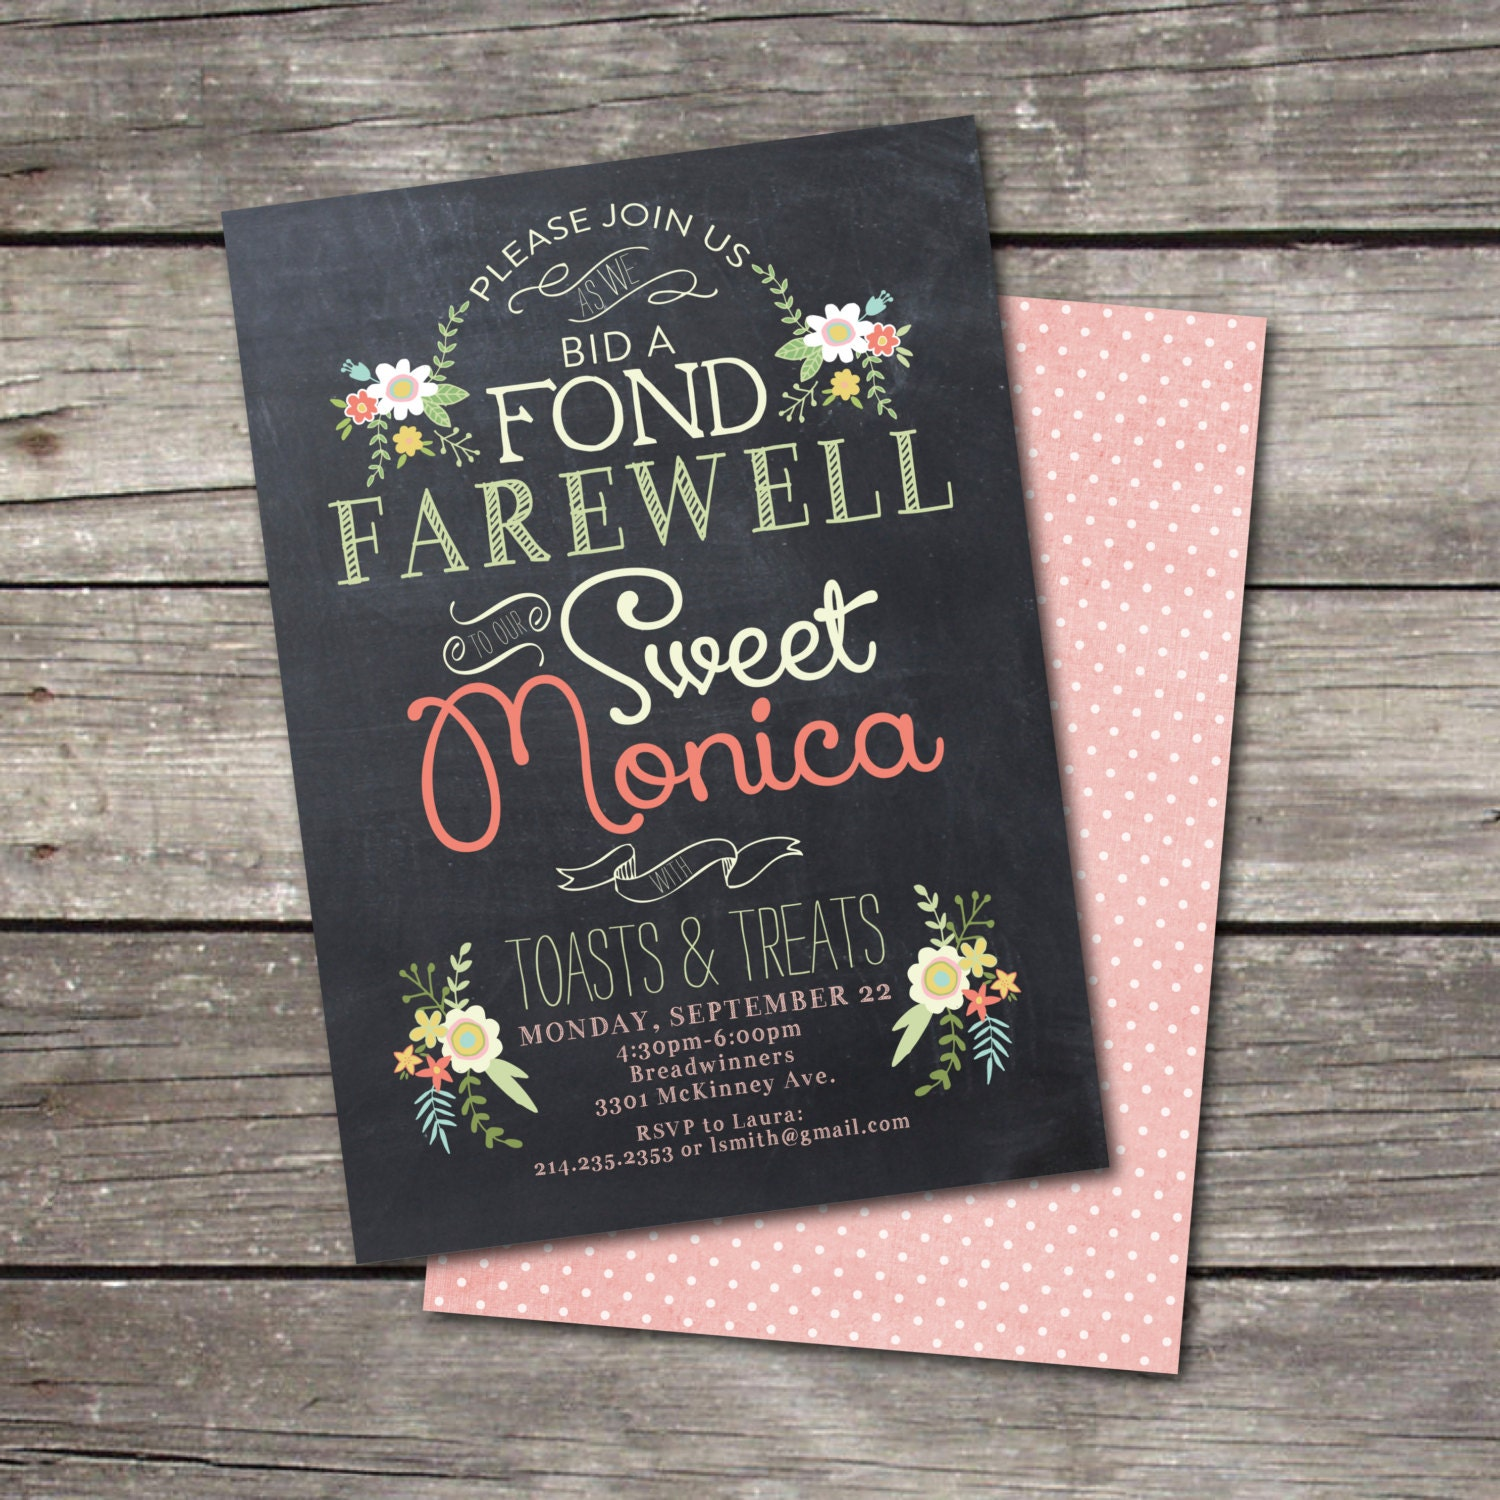 Leaving Party Invitation with good invitations design